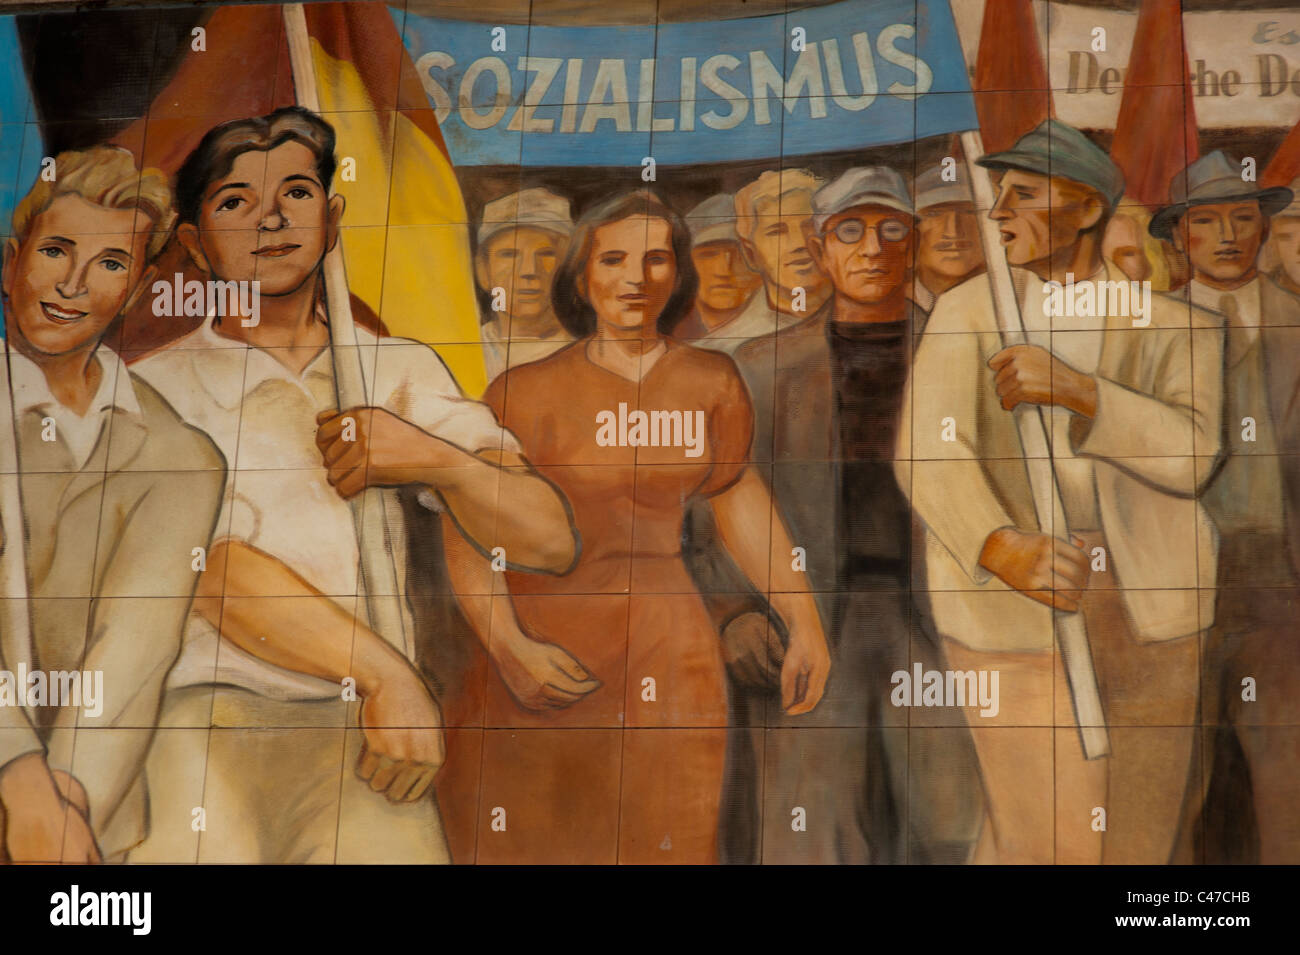 Socialist realist mural on a building in Berlin, Germany depicting young male and female musicians leading a parade. - Stock Image